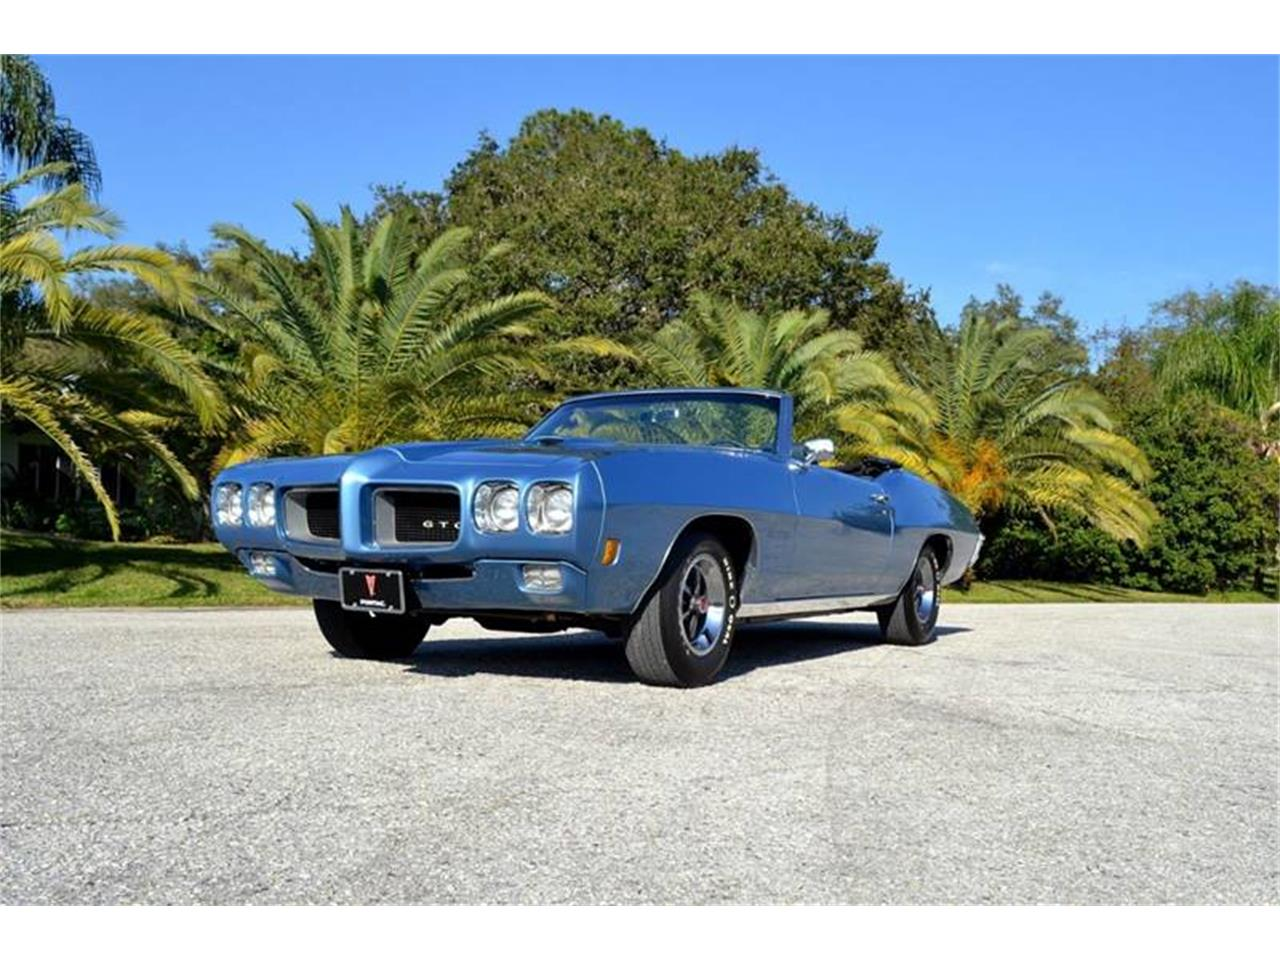 Large Picture of 1970 Pontiac GTO located in Clearwater Florida - $64,900.00 Offered by PJ's Auto World - PH2Q